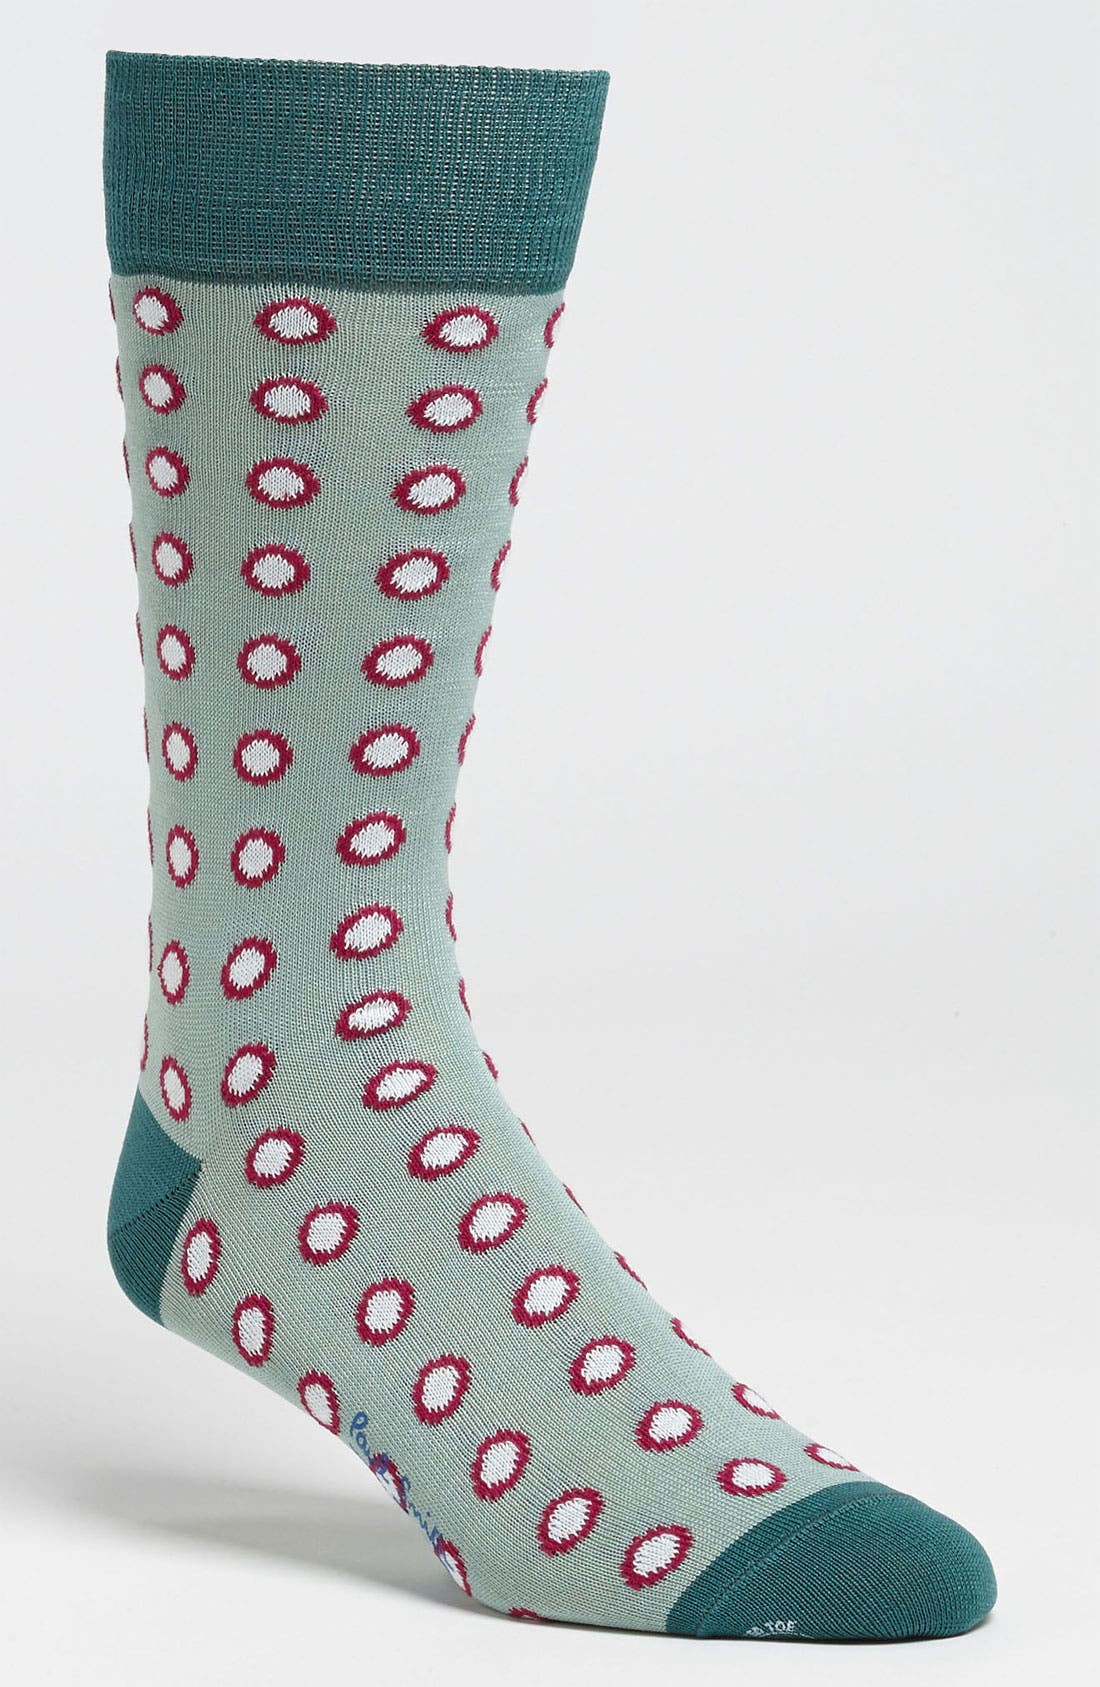 Alternate Image 1 Selected - Paul Smith Accessories 'London' Socks